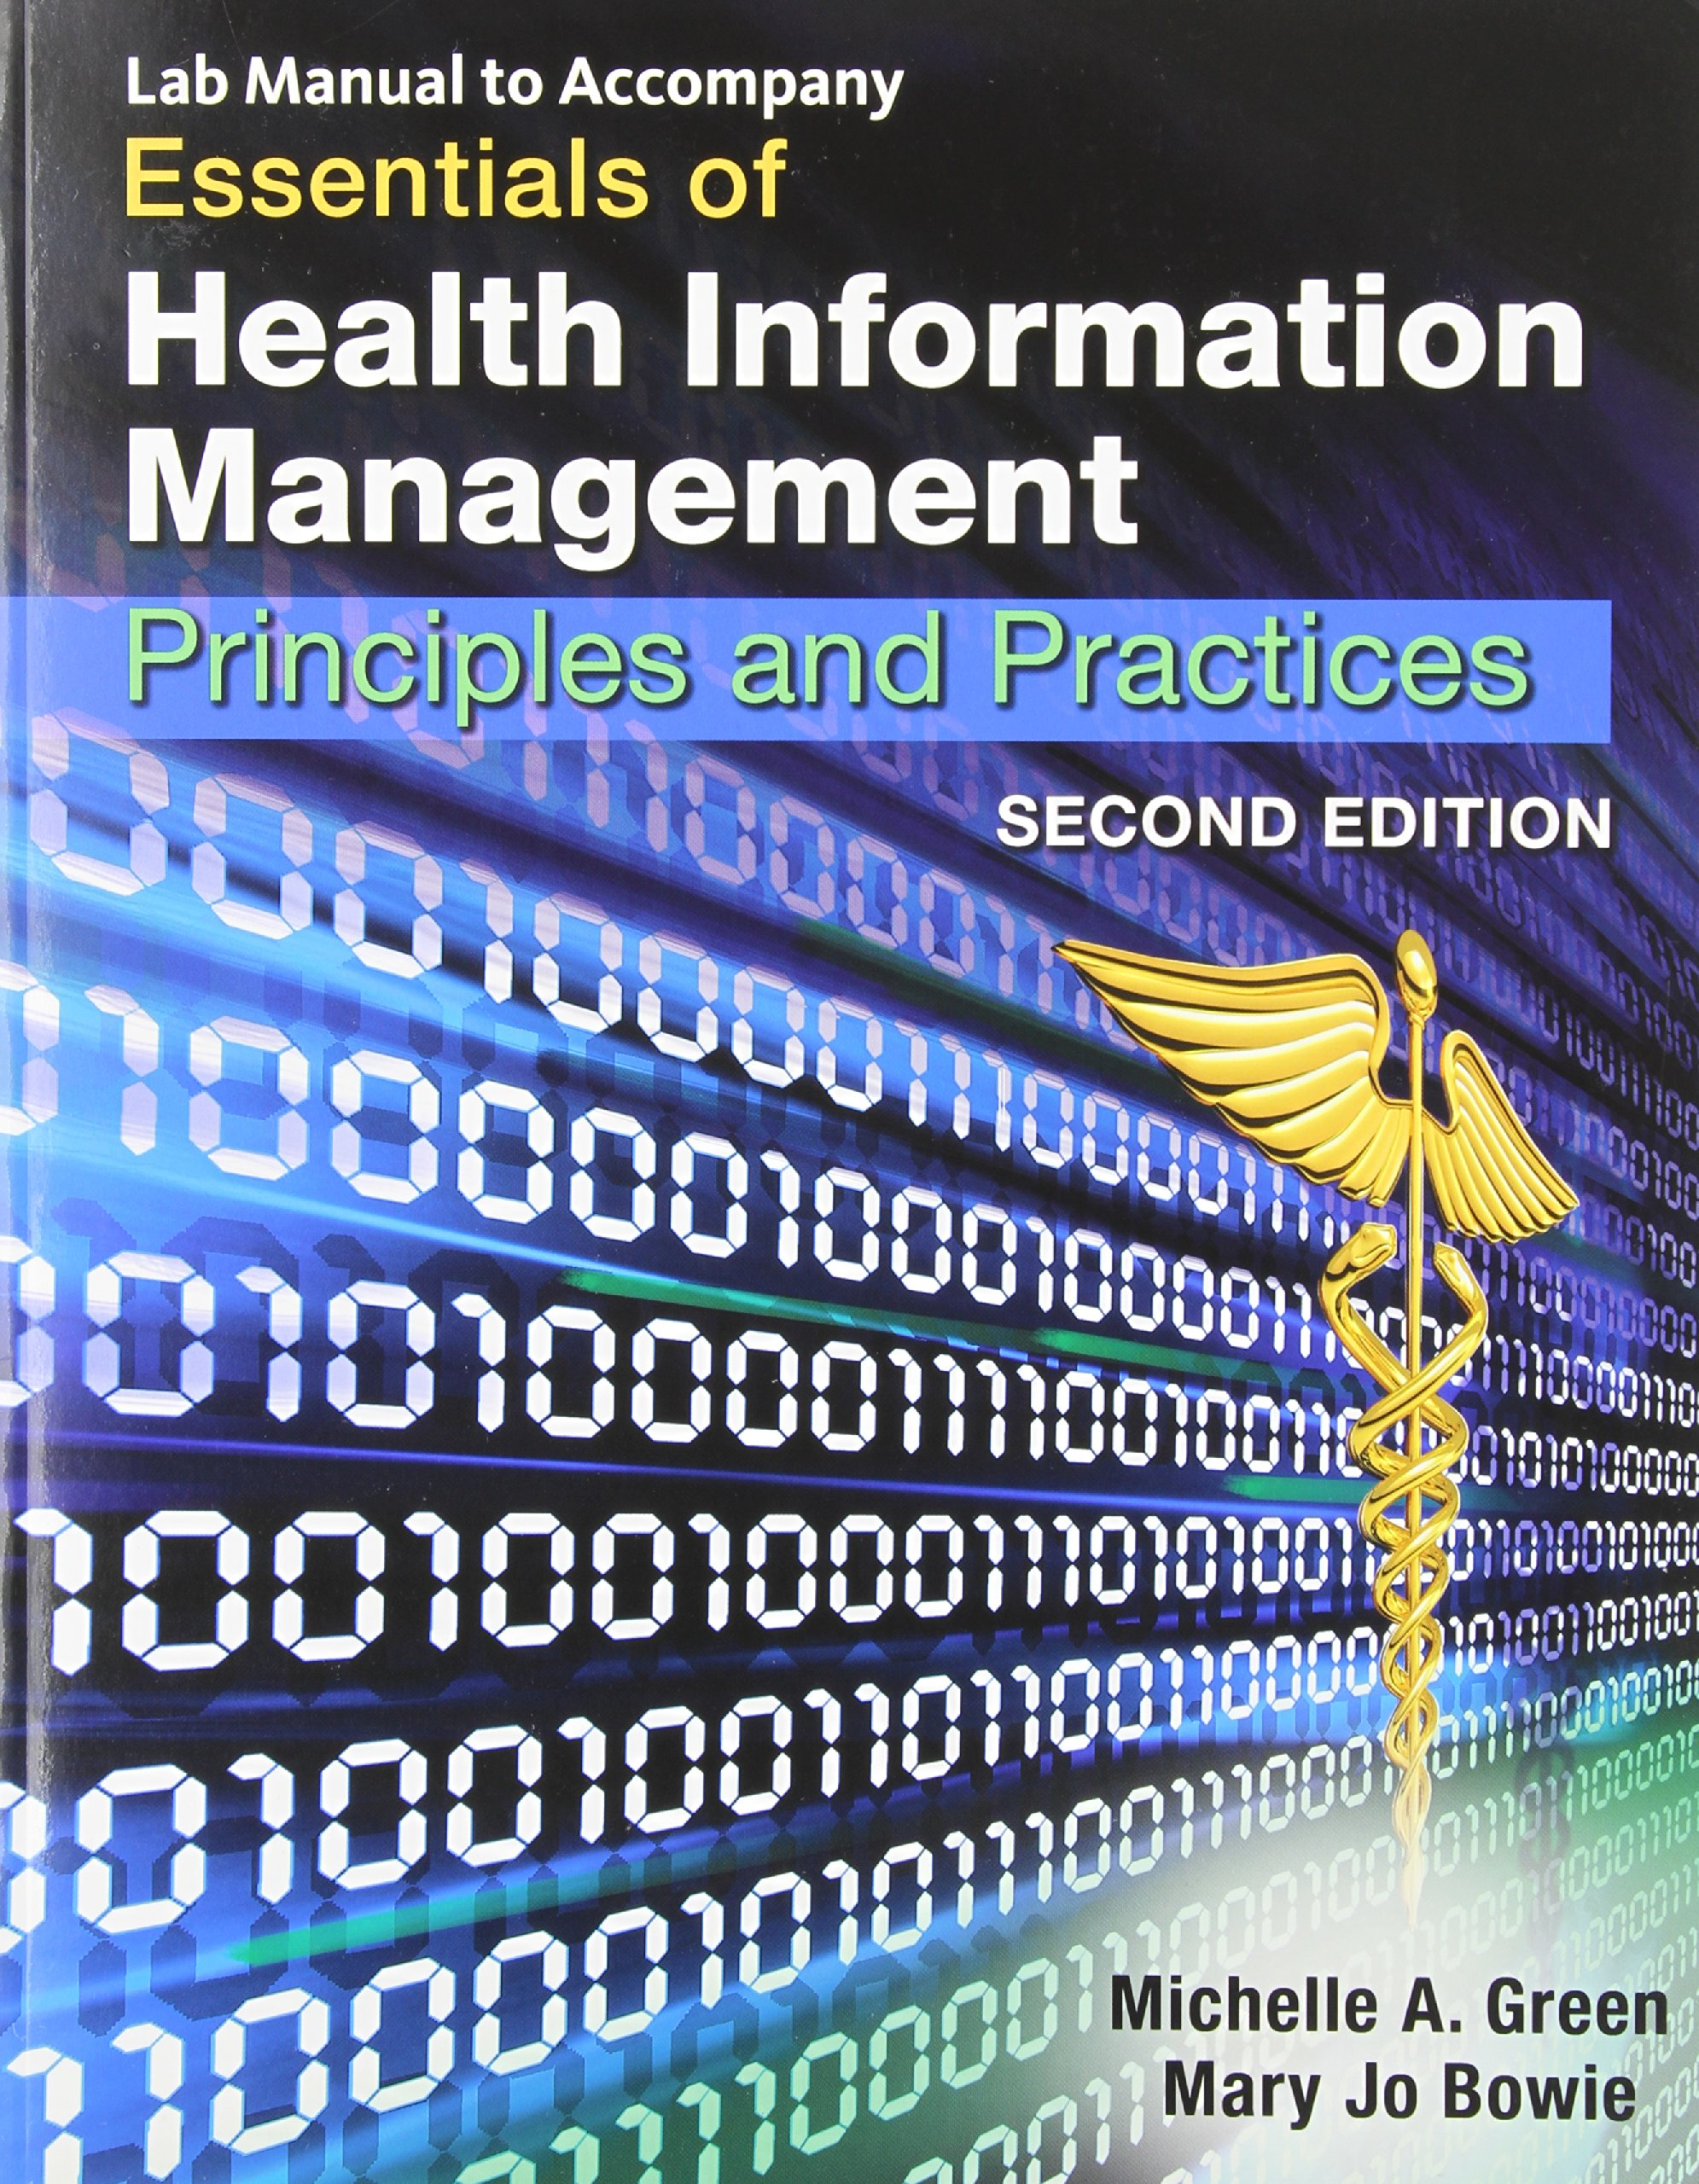 Lab Manual Essentials of Health Information Management: Principles and  Practices: Amazon.co.uk: Michelle A Green, Mary Jo Bowie: 9781439060063:  Books